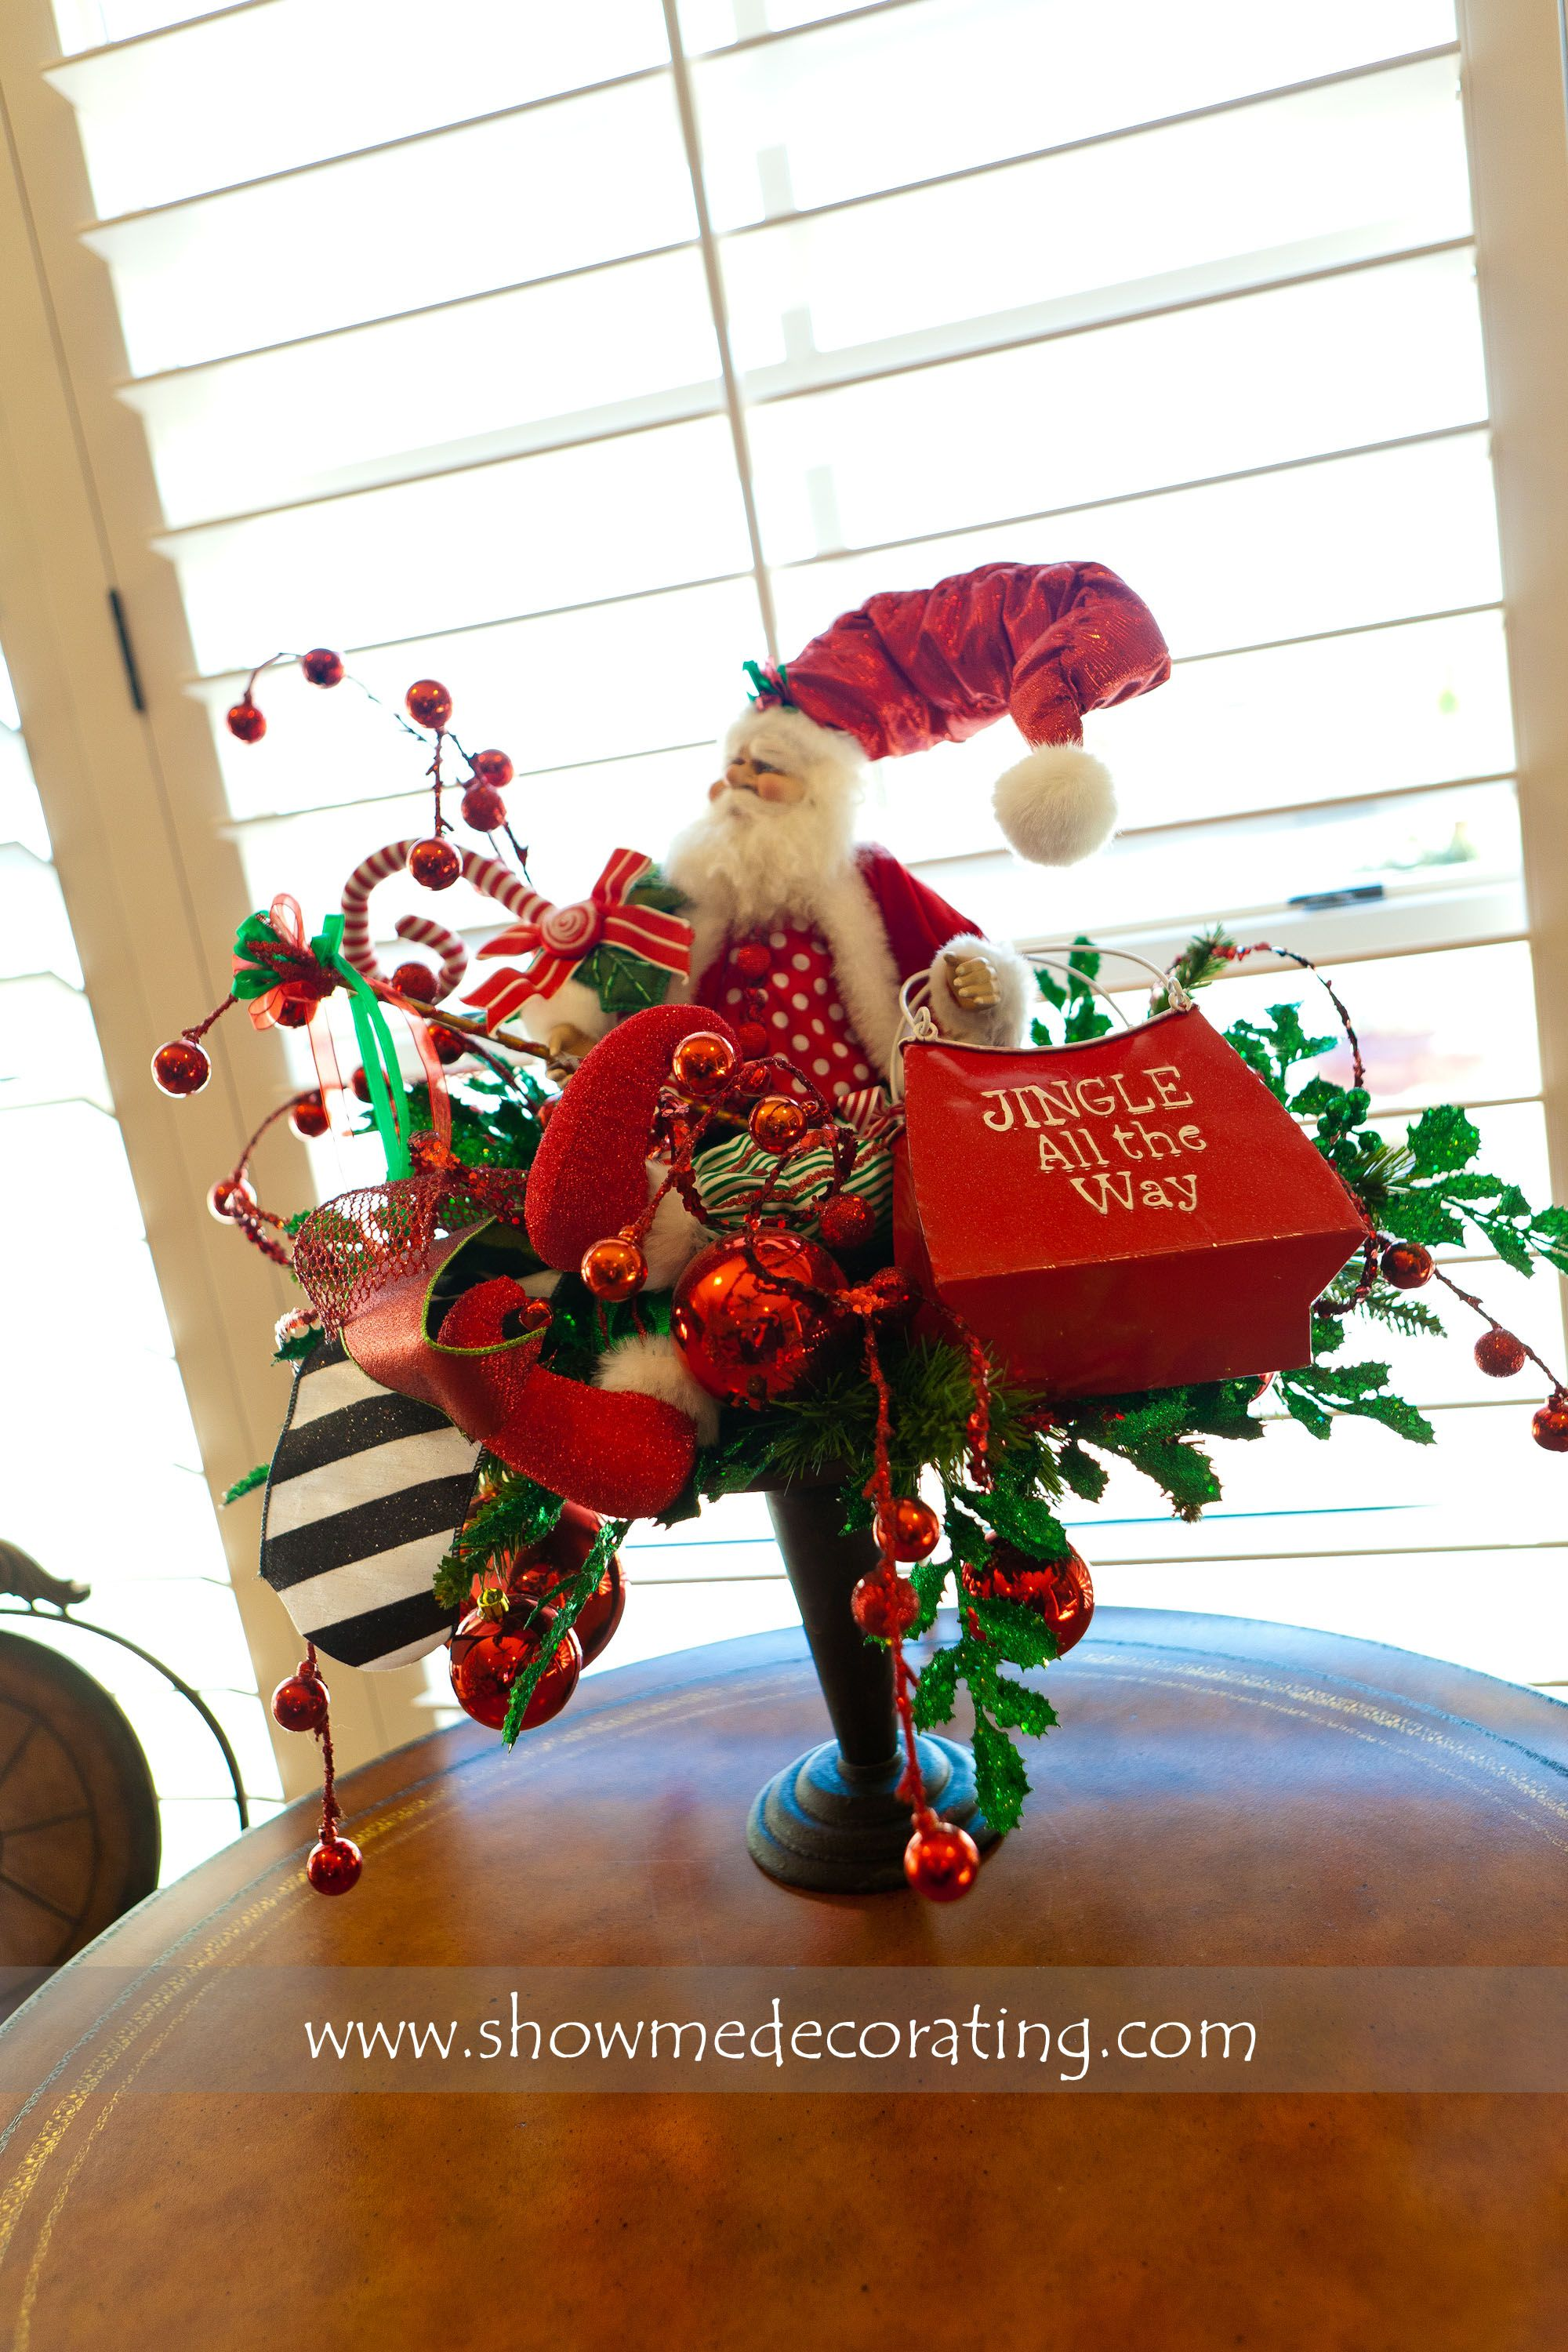 Santa Centerpiece brings Christmas cheer to any room.  www.showmedecorting.com